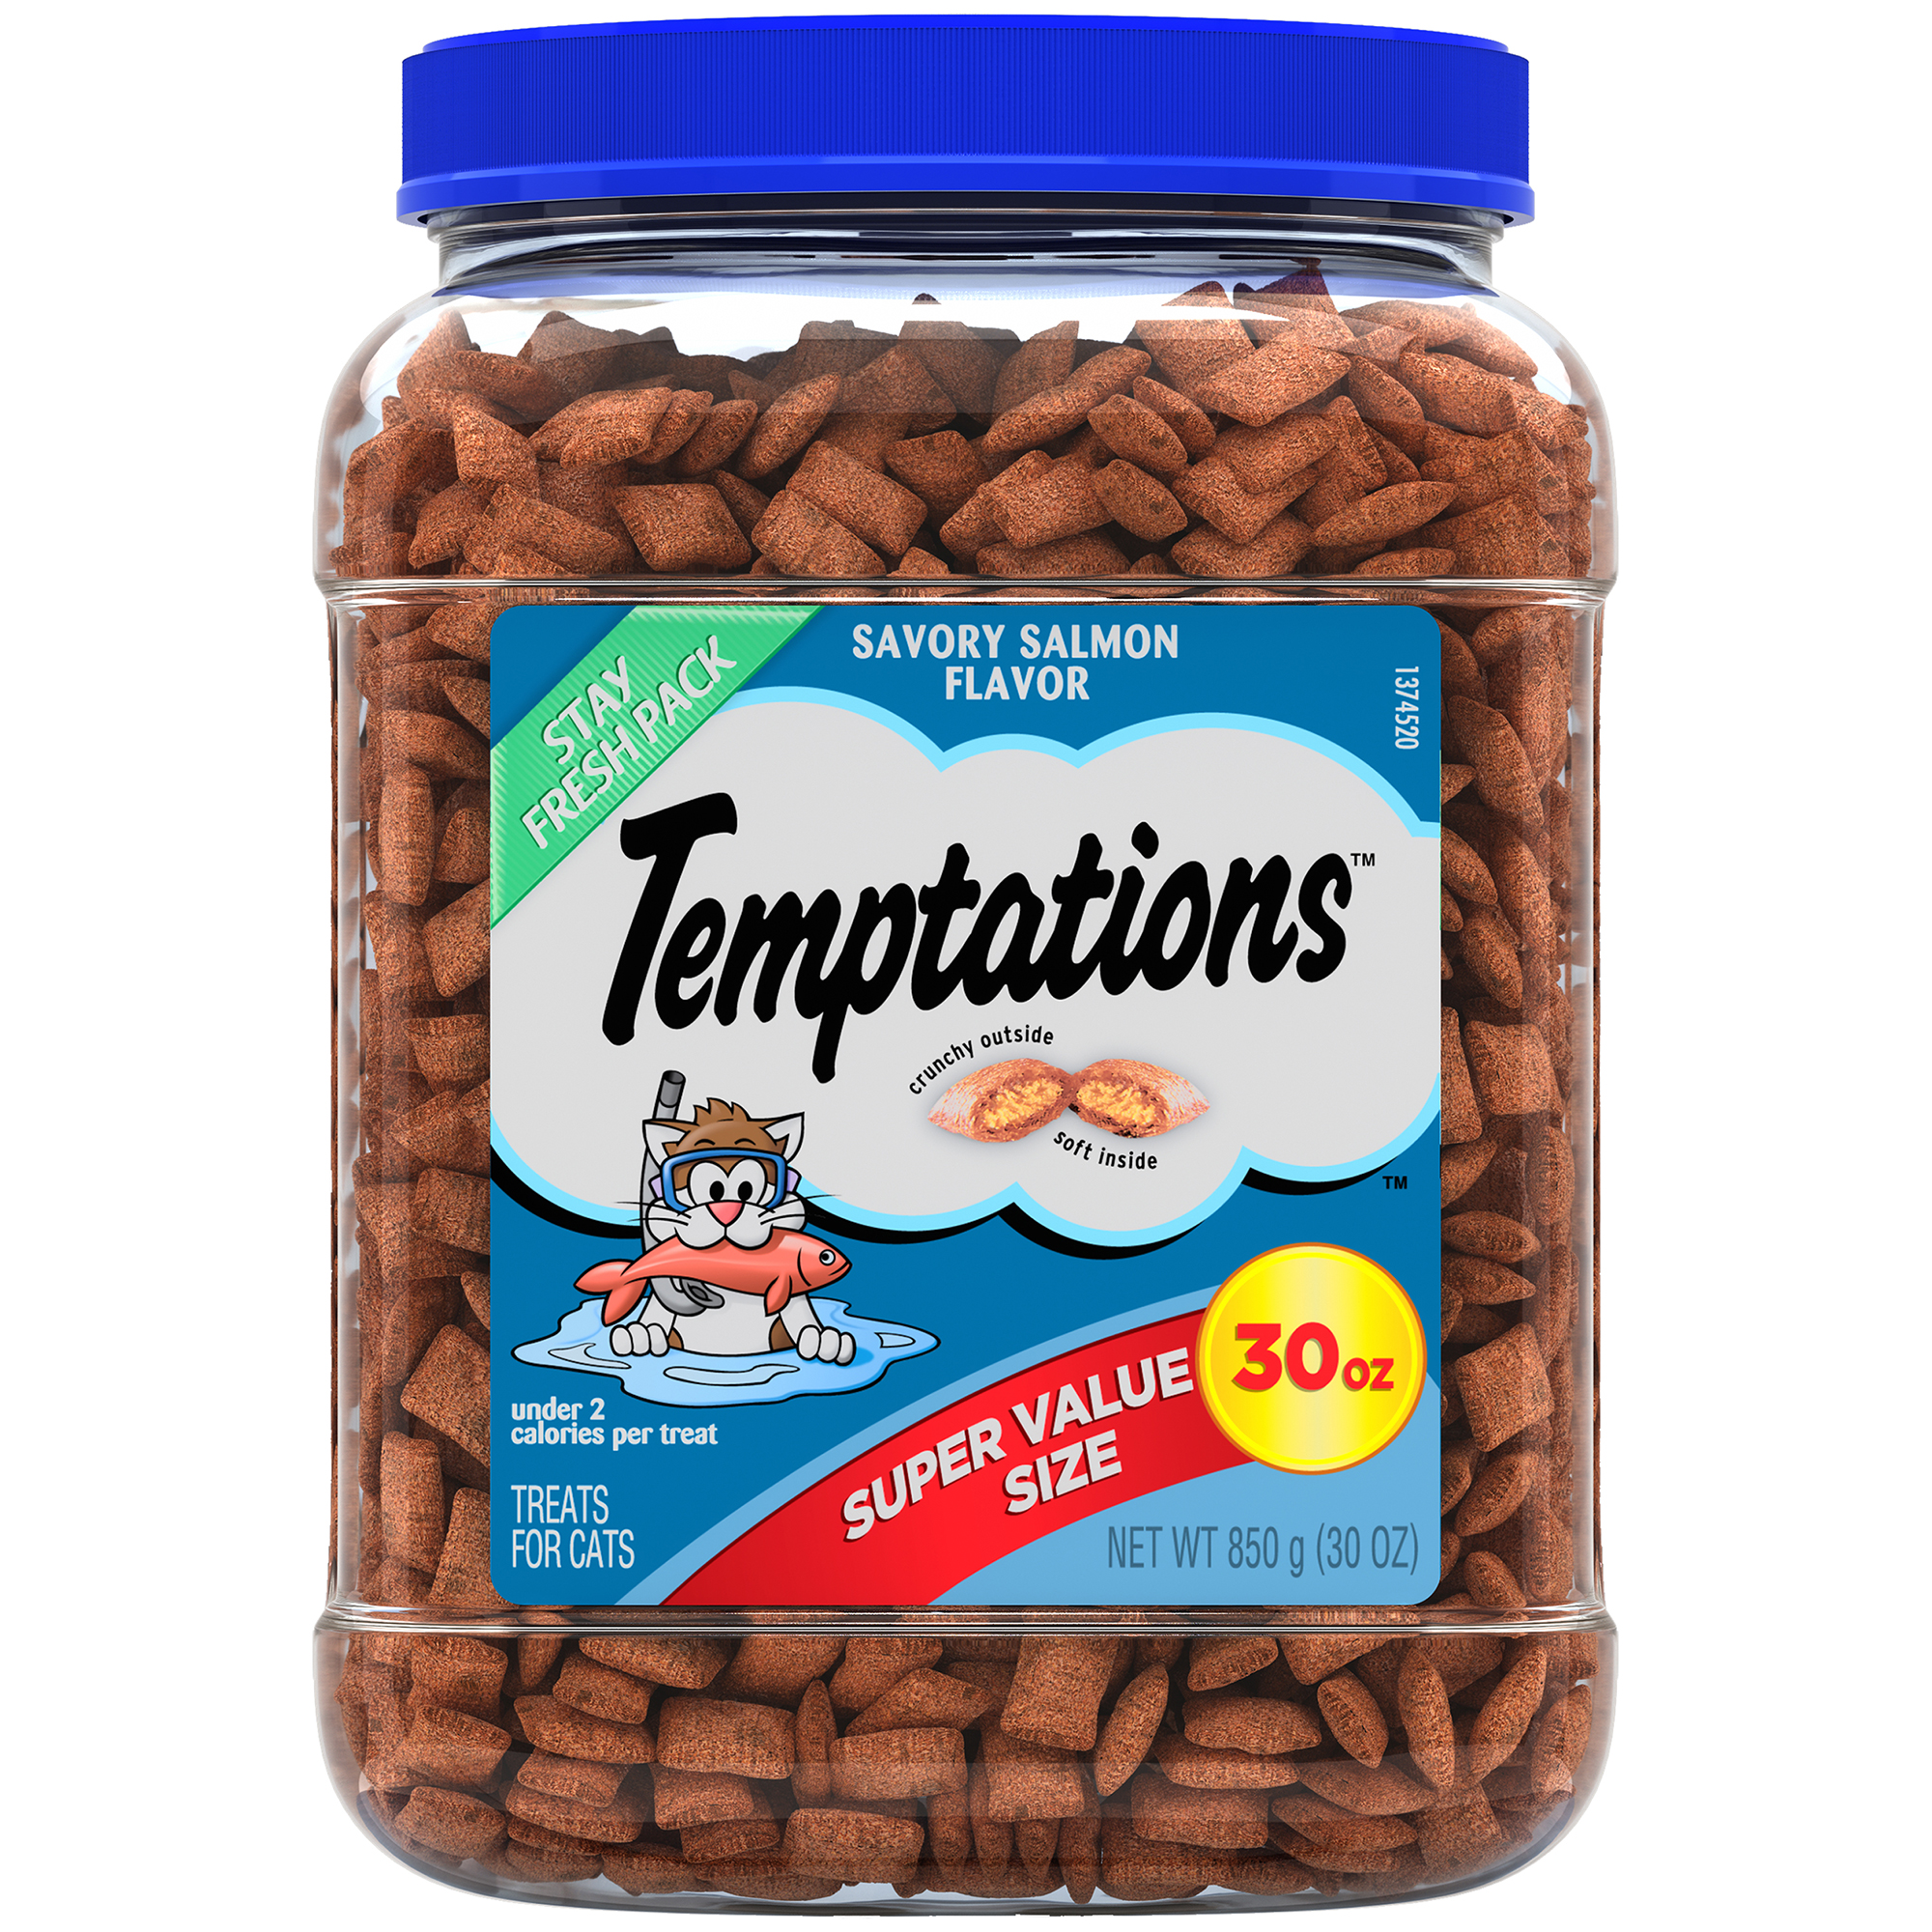 TEMPTATIONS Classic Cat Treats Savory Salmon Flavor, 30 oz. Tub